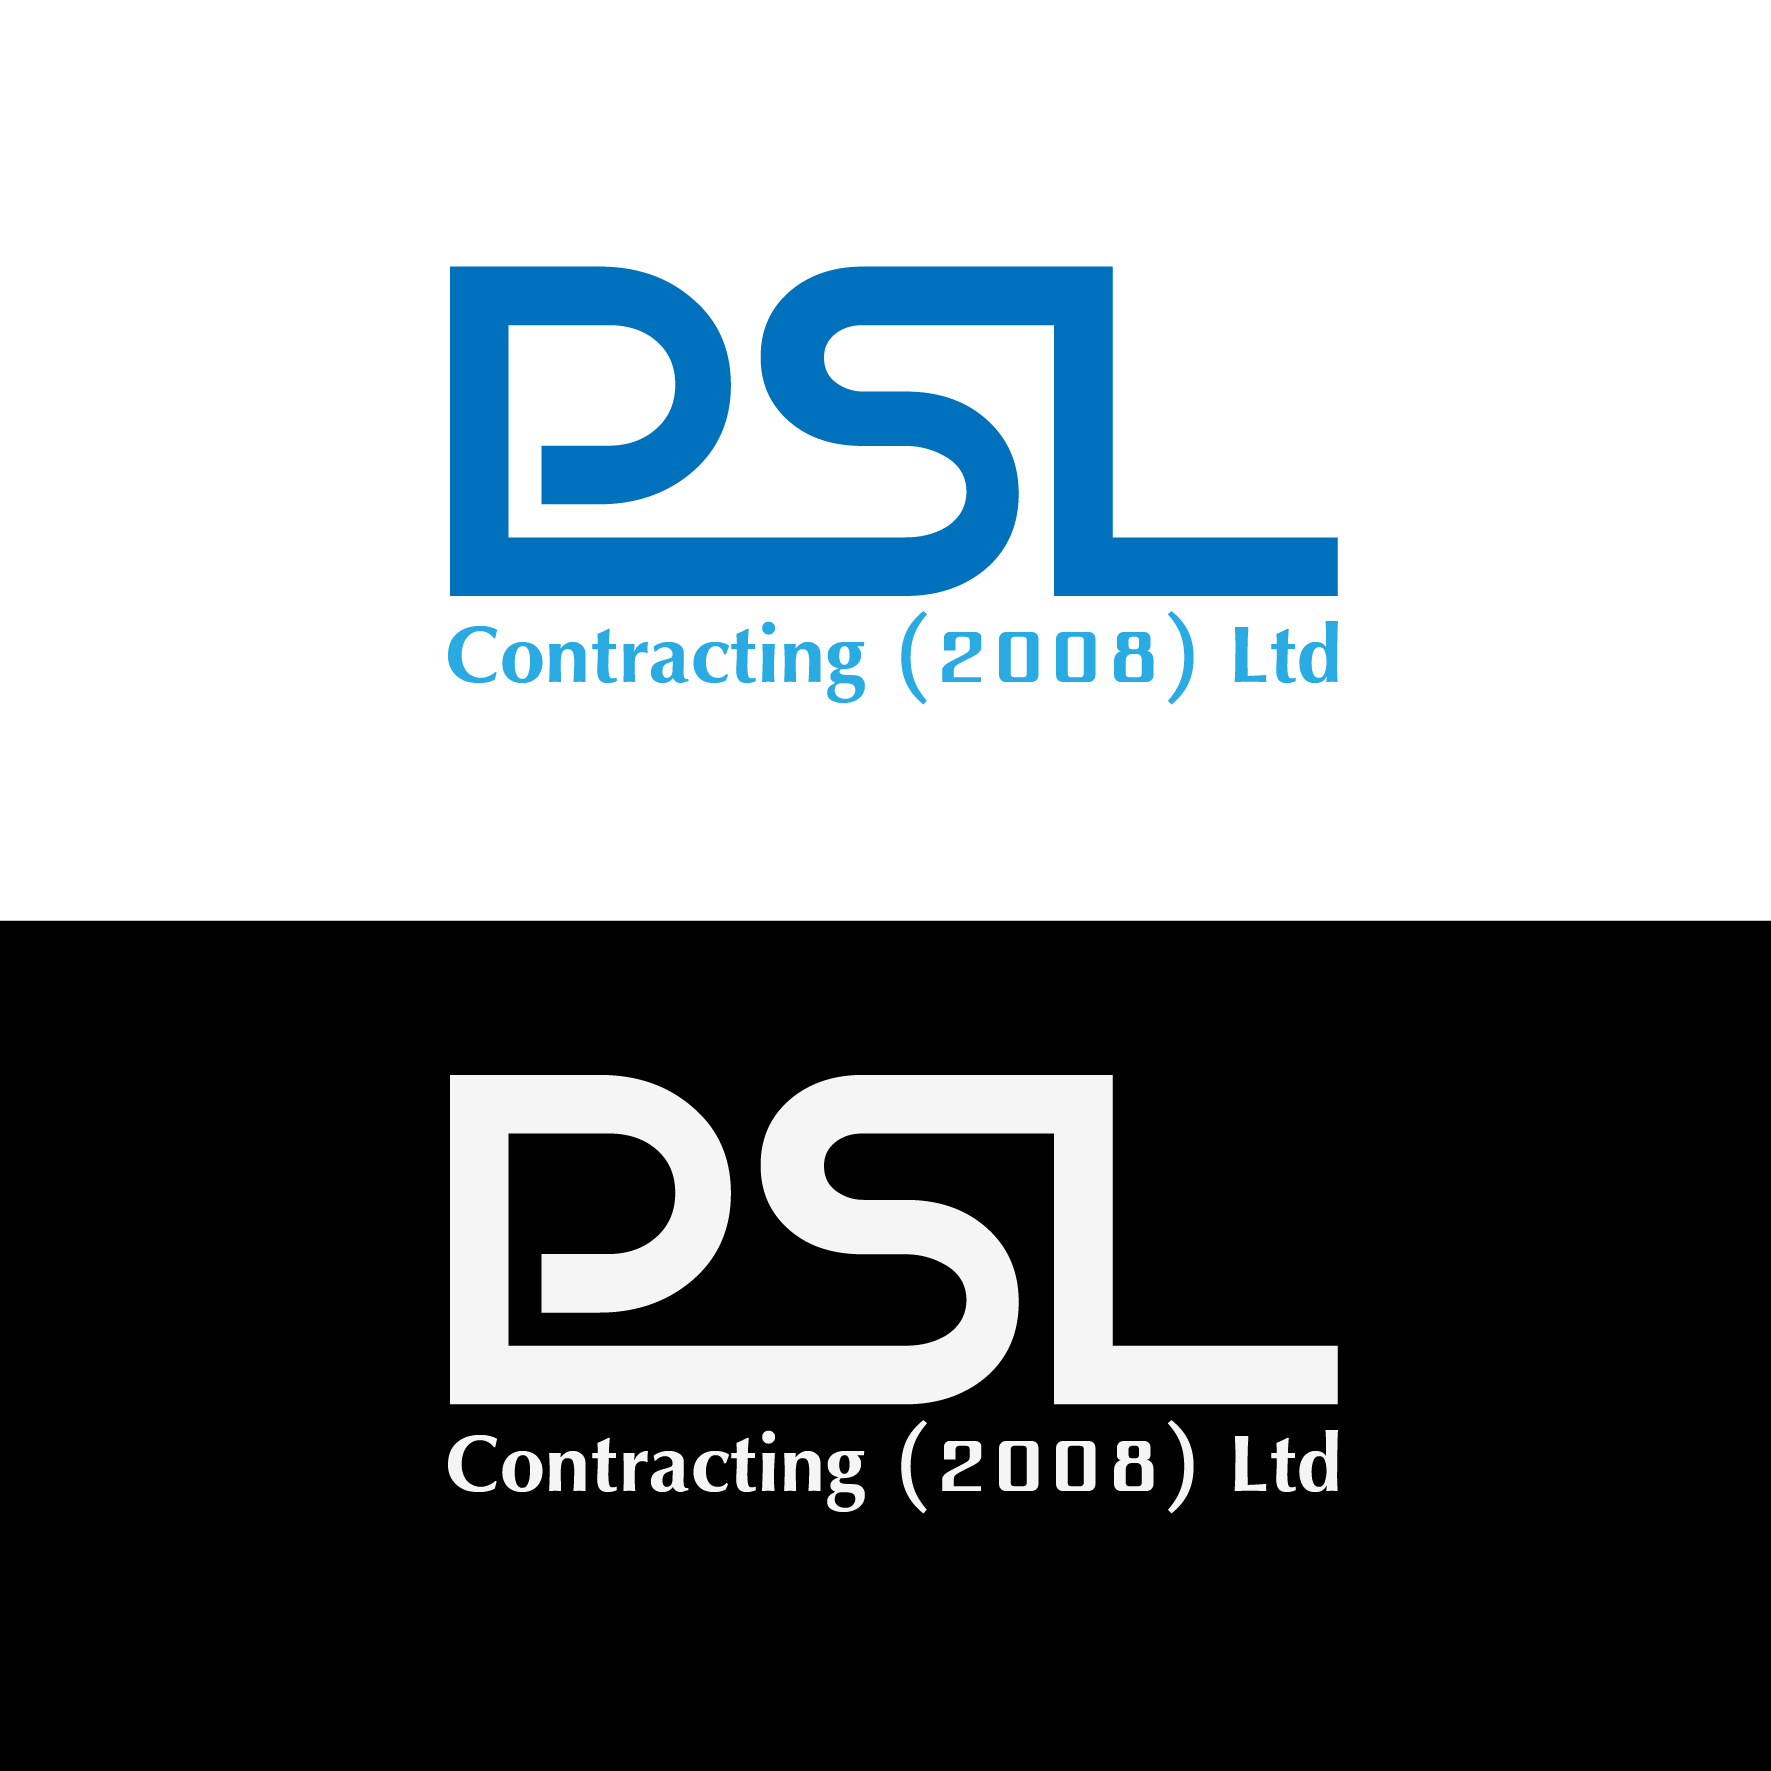 Logo Design by 3draw - Entry No. 1 in the Logo Design Contest PSL Contracting (2008) Ltd. Logo Design.